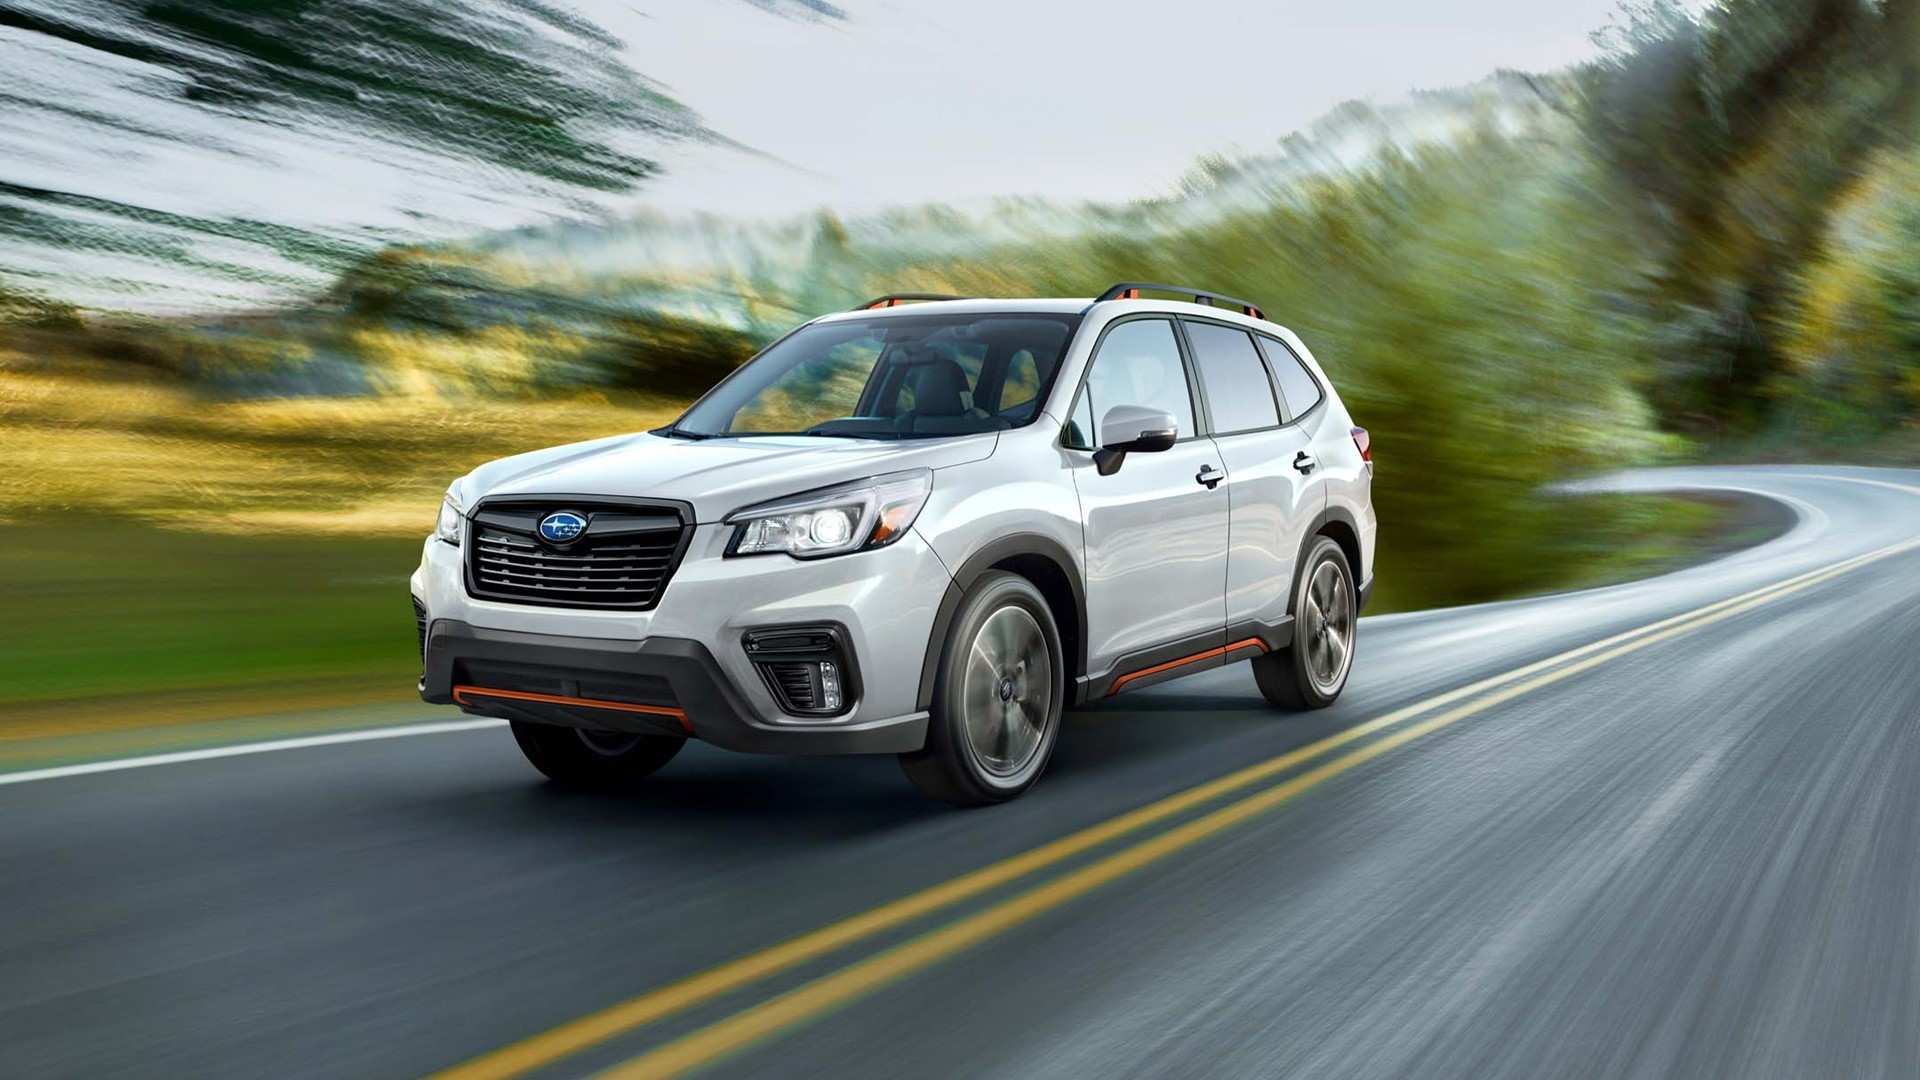 14 New 2020 Subaru Forester Canada Research New for 2020 Subaru Forester Canada